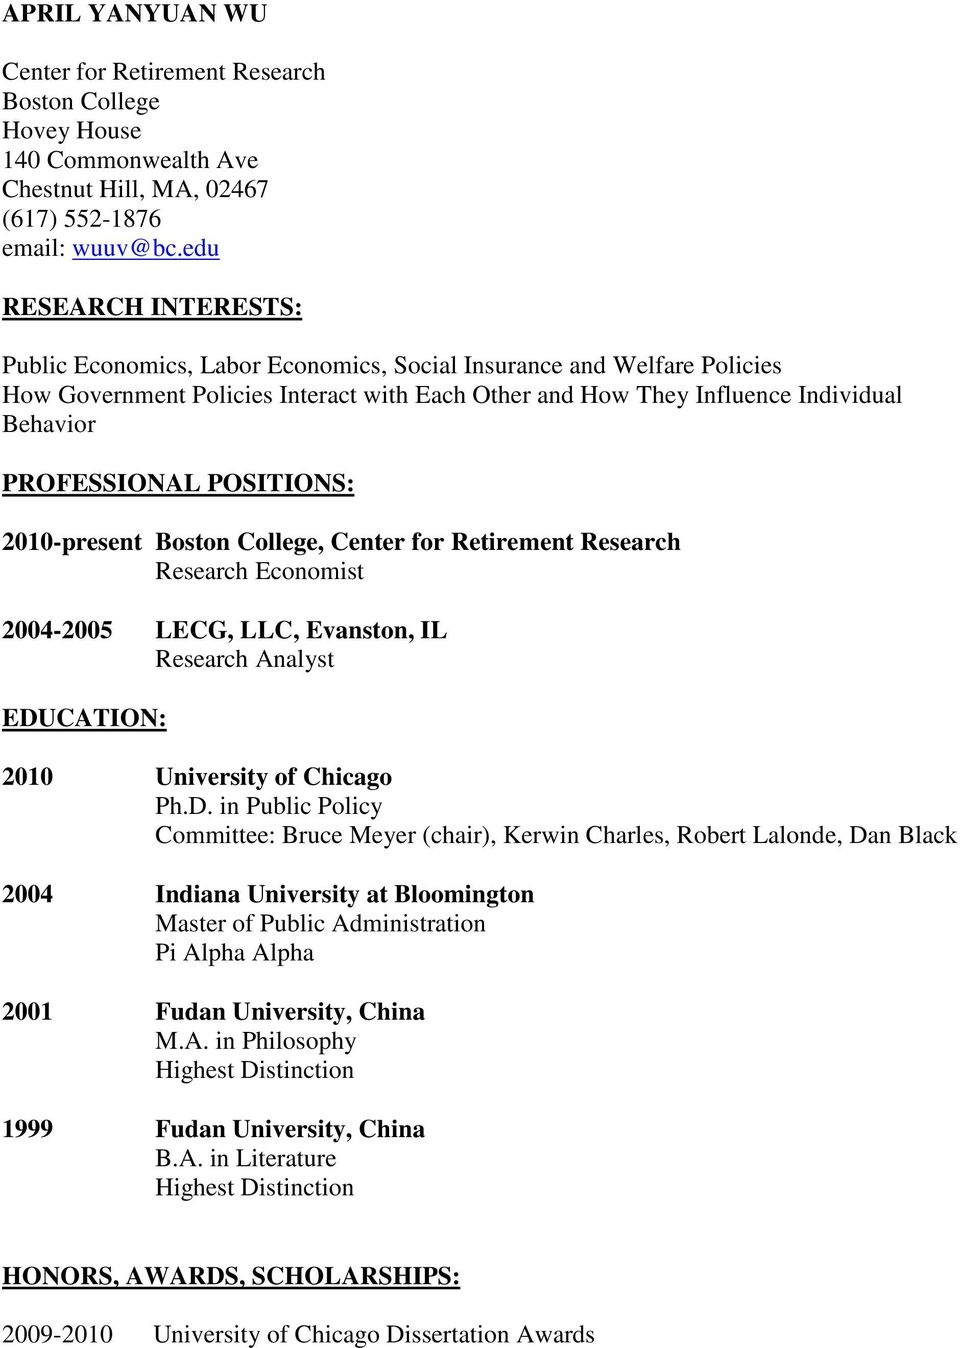 center for retirement research at boston college working papers